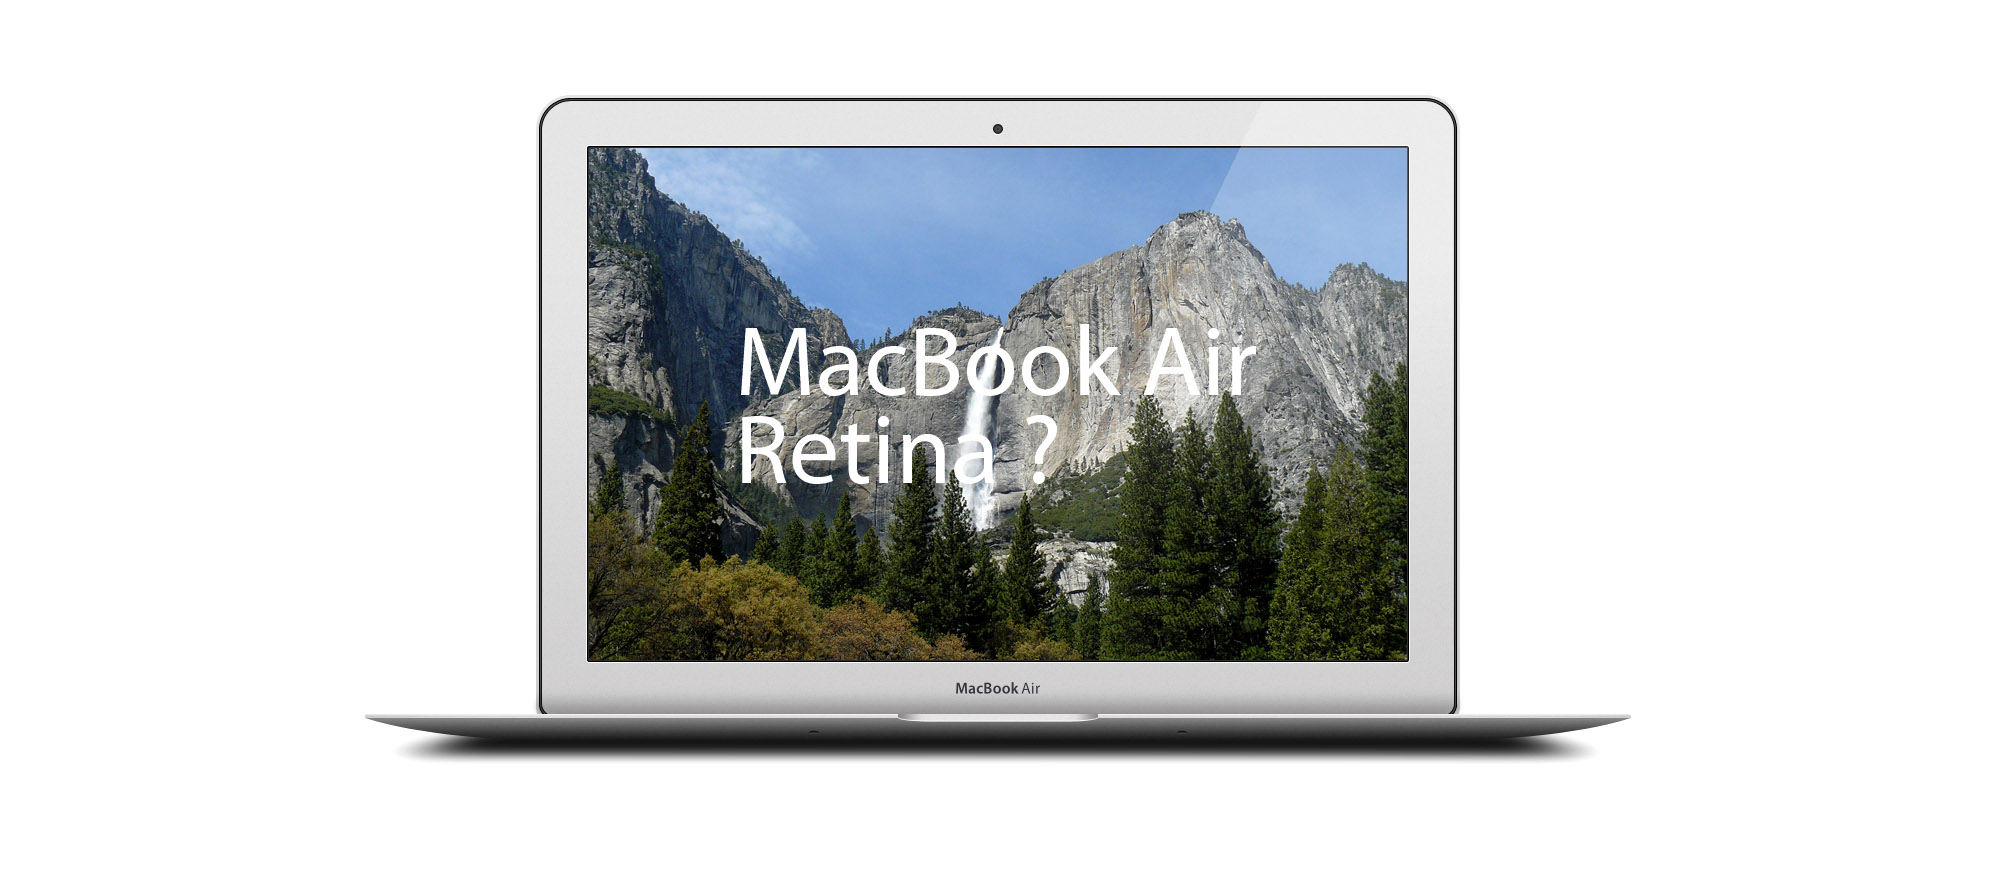 MacBook Air Retina?